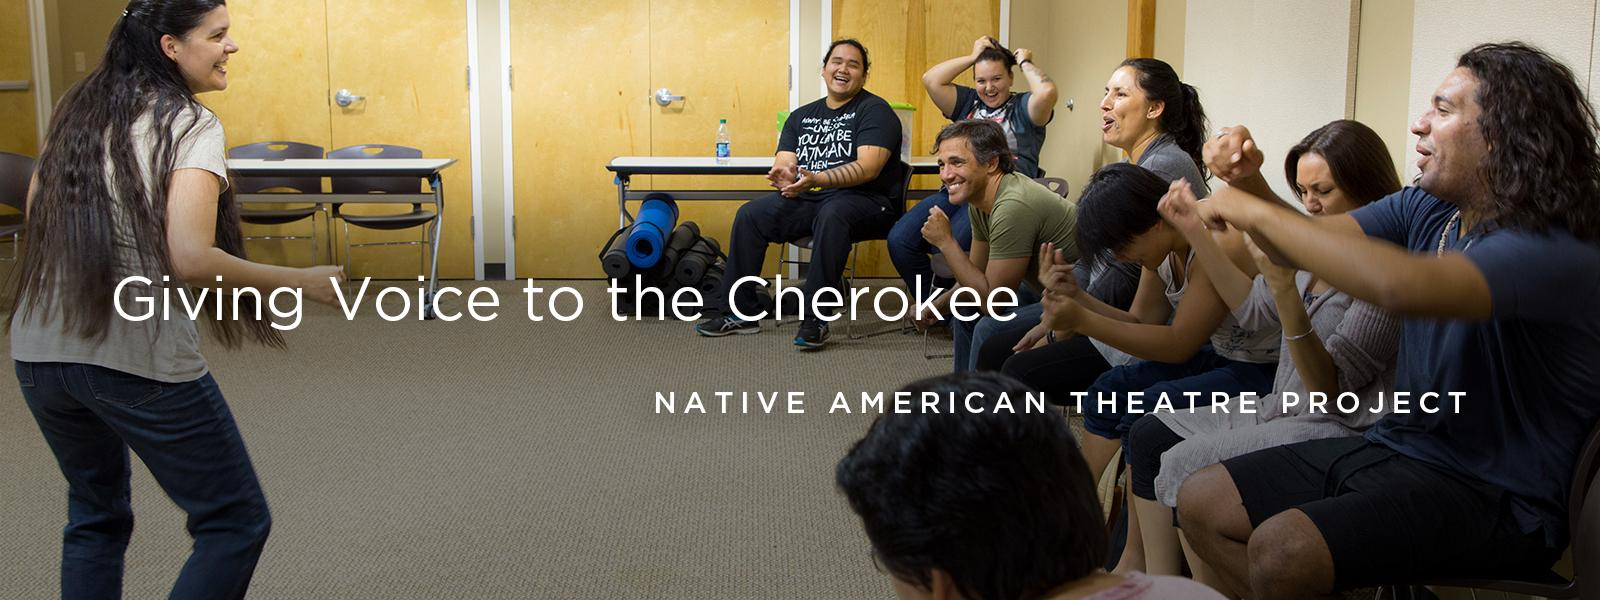 Giving Voice to the Cherokee - Native American Theatre Project